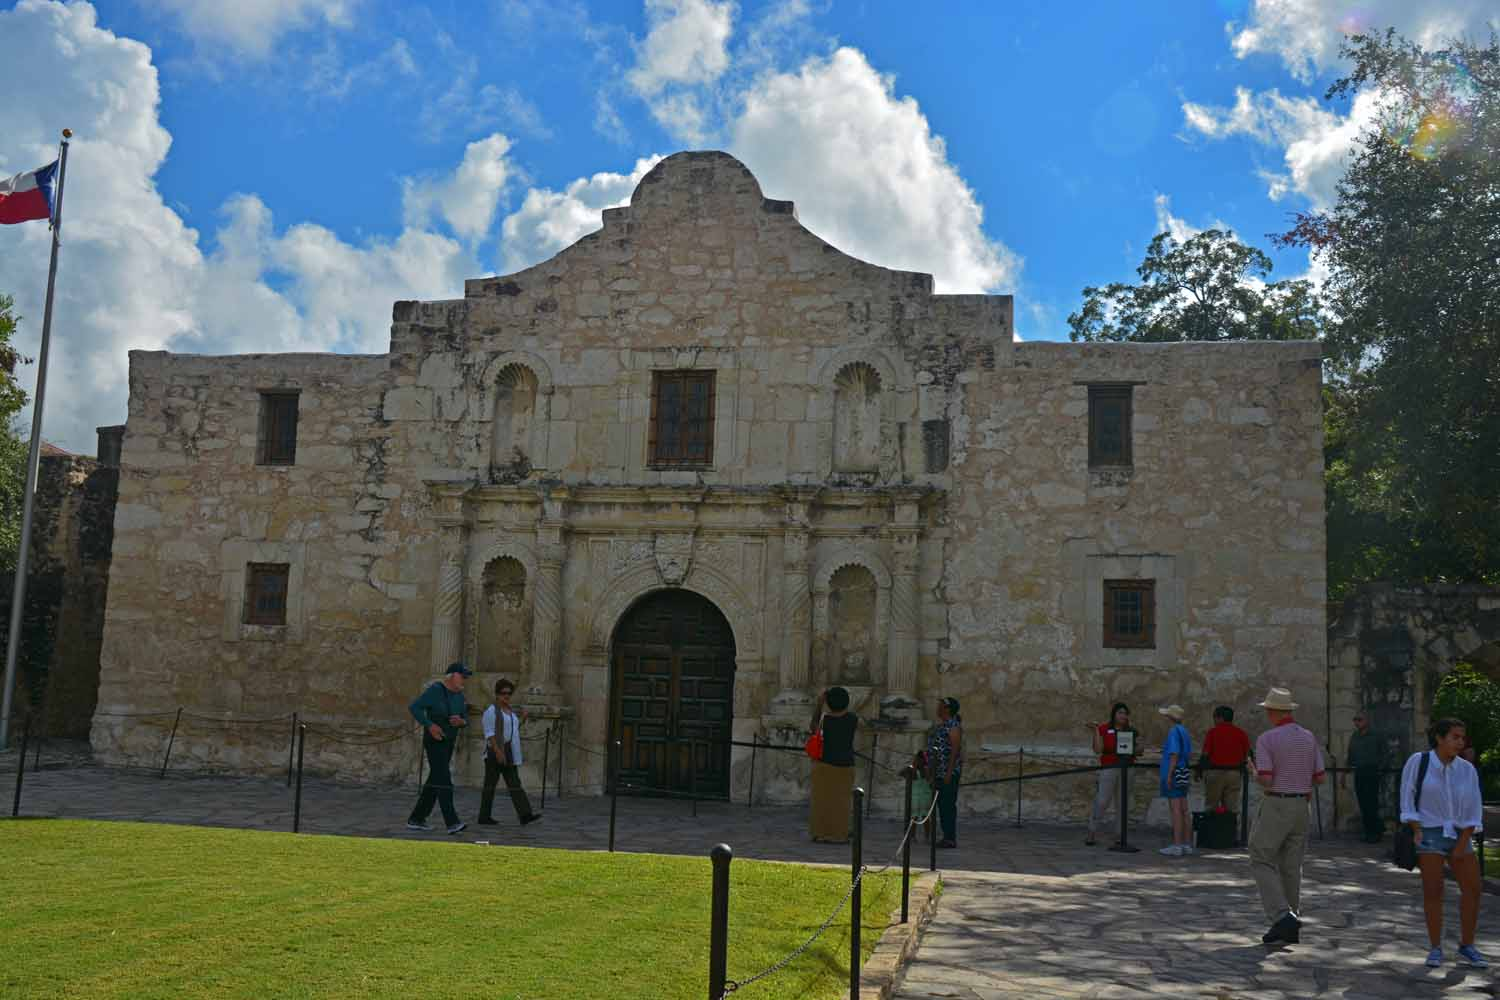 Lots of history at the Alamo...